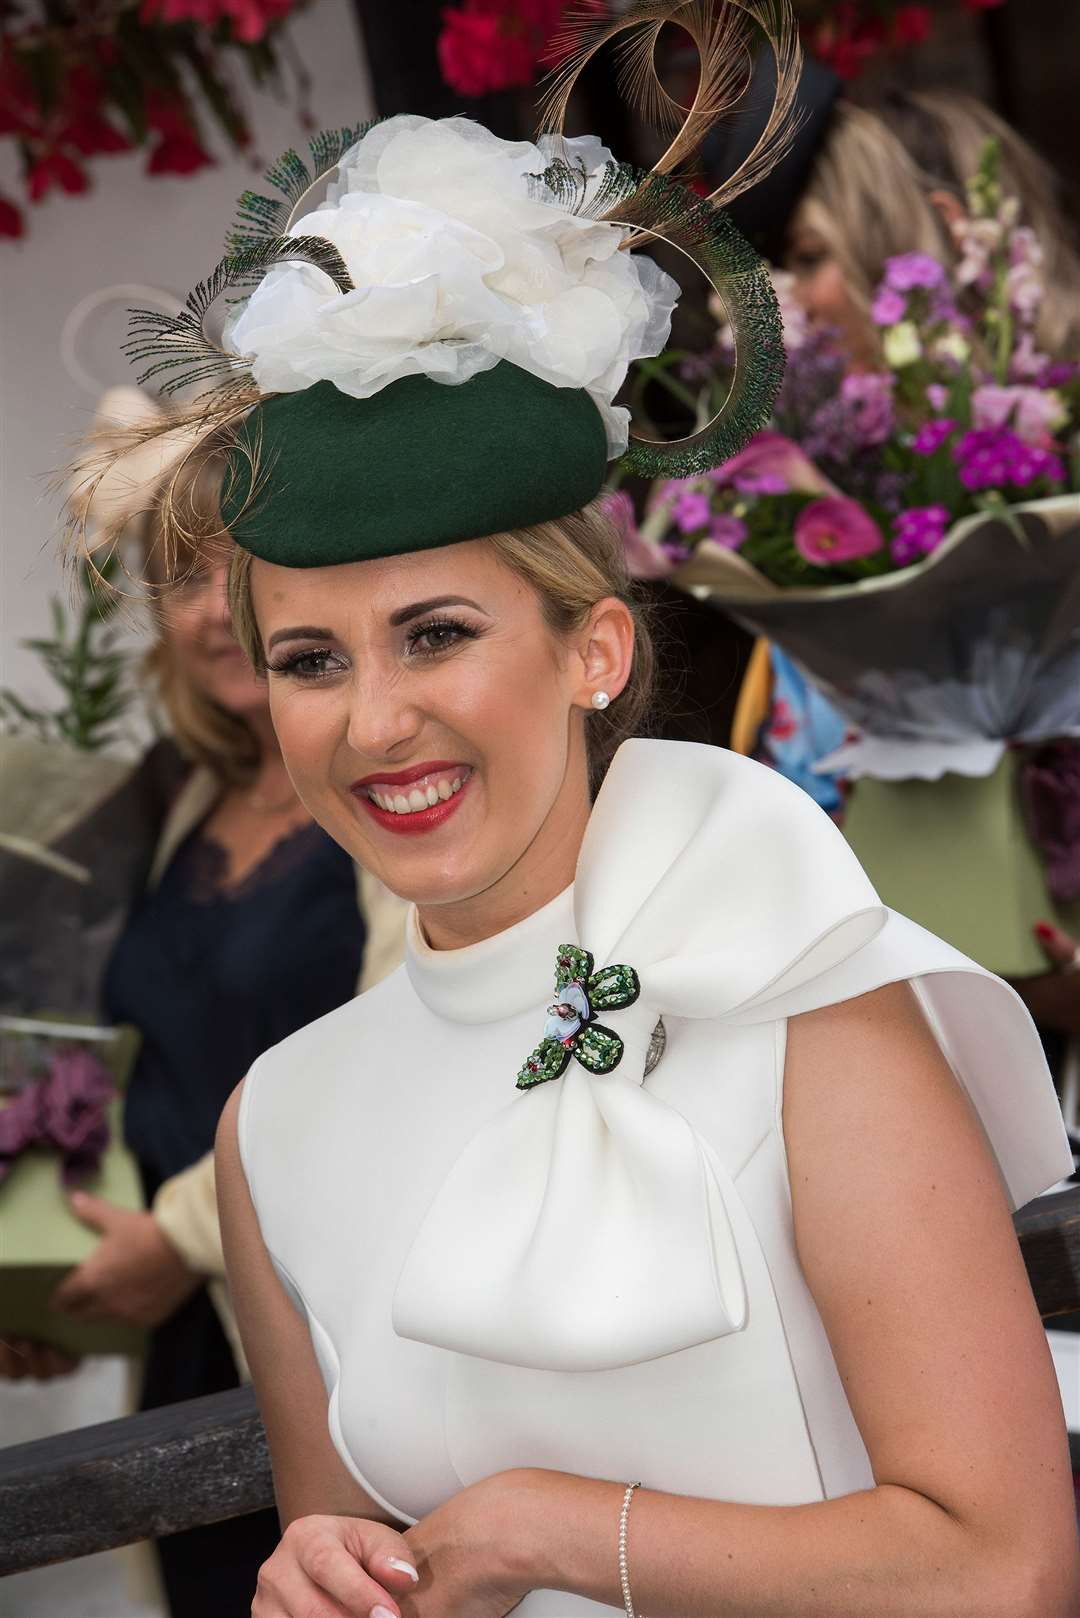 Newmarket July Course Ladies Day 2019Natalie White, of Newmarket, who won Best Dressed Lady at Ladies Day Picture by Mark Westley. (13824115)